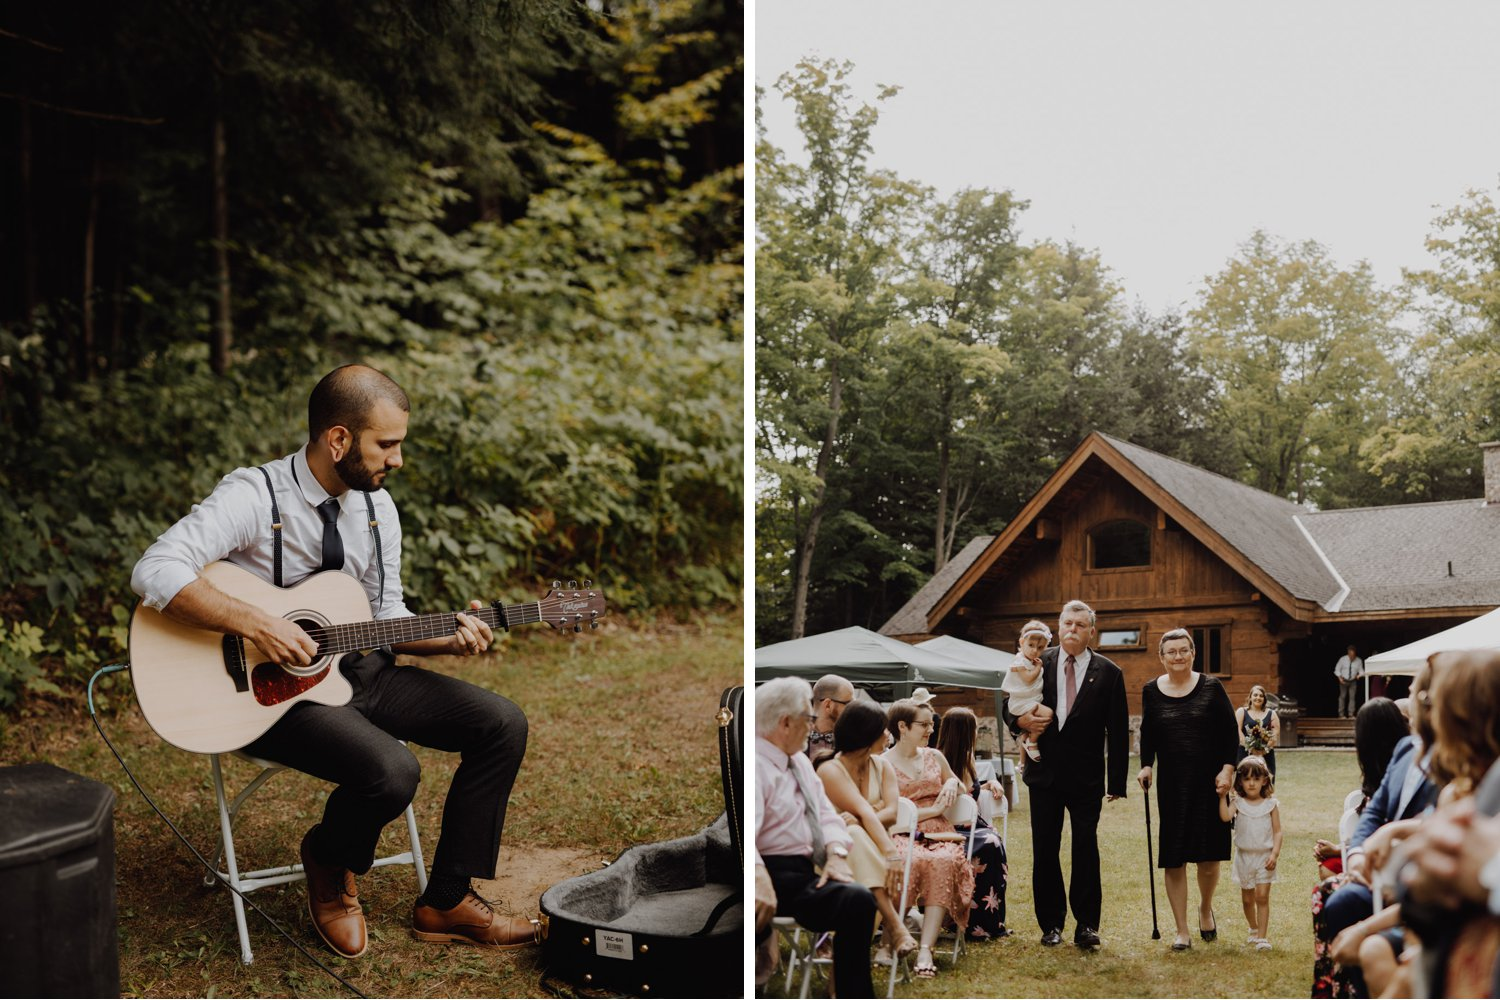 Outdoor Camp Wedding - acoustic music at ceremony